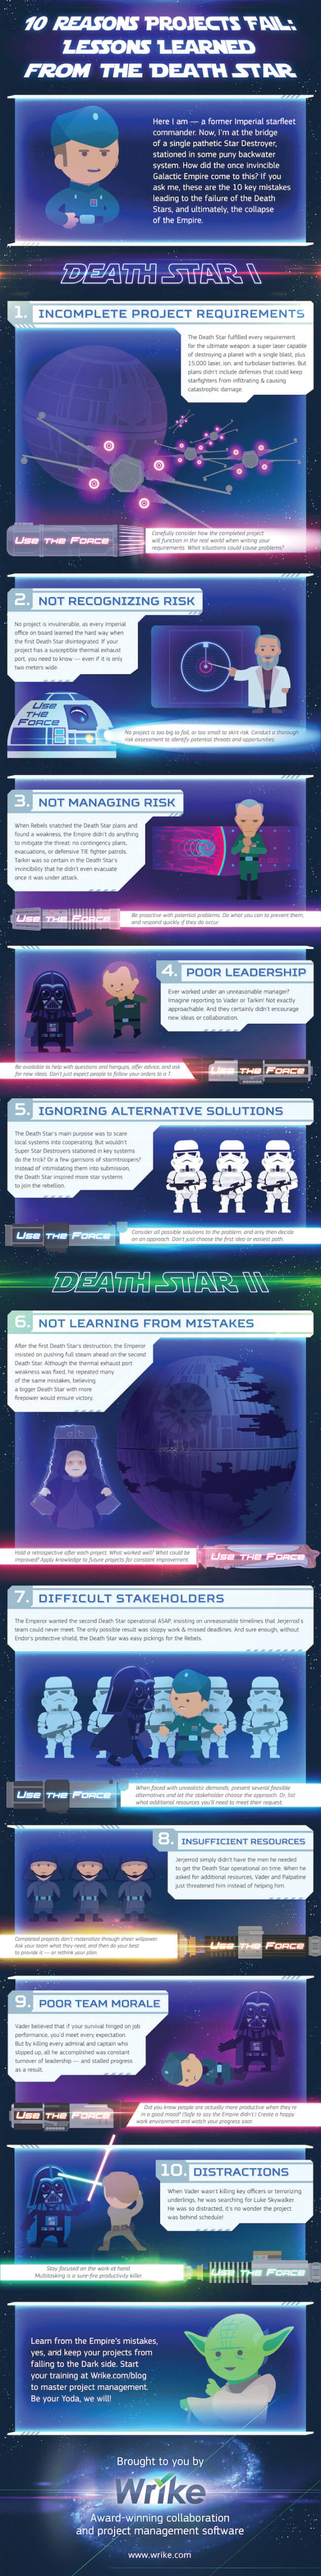 Image titled 10 Lessons Learned from the Death Star Project Failure